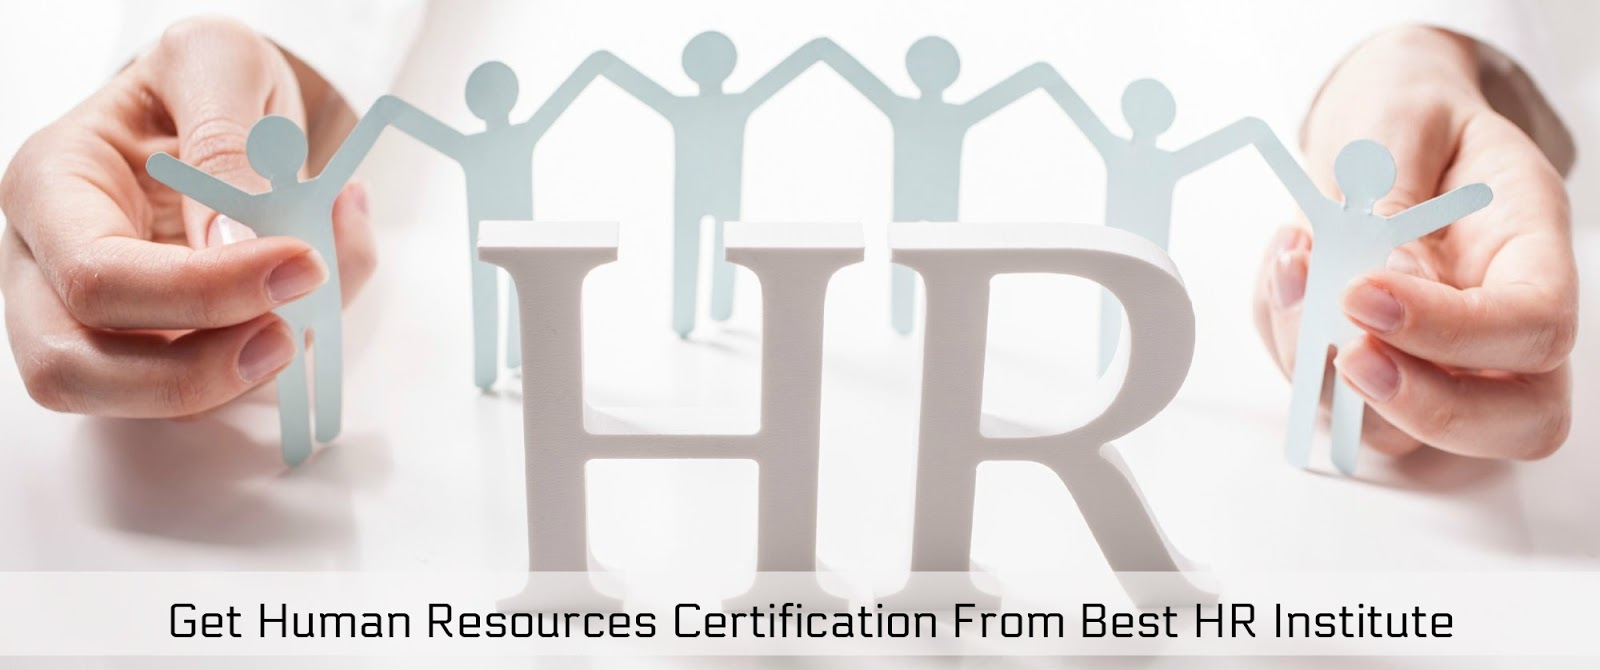 Get Human Resources Certification From Best Hr Institute World Informs